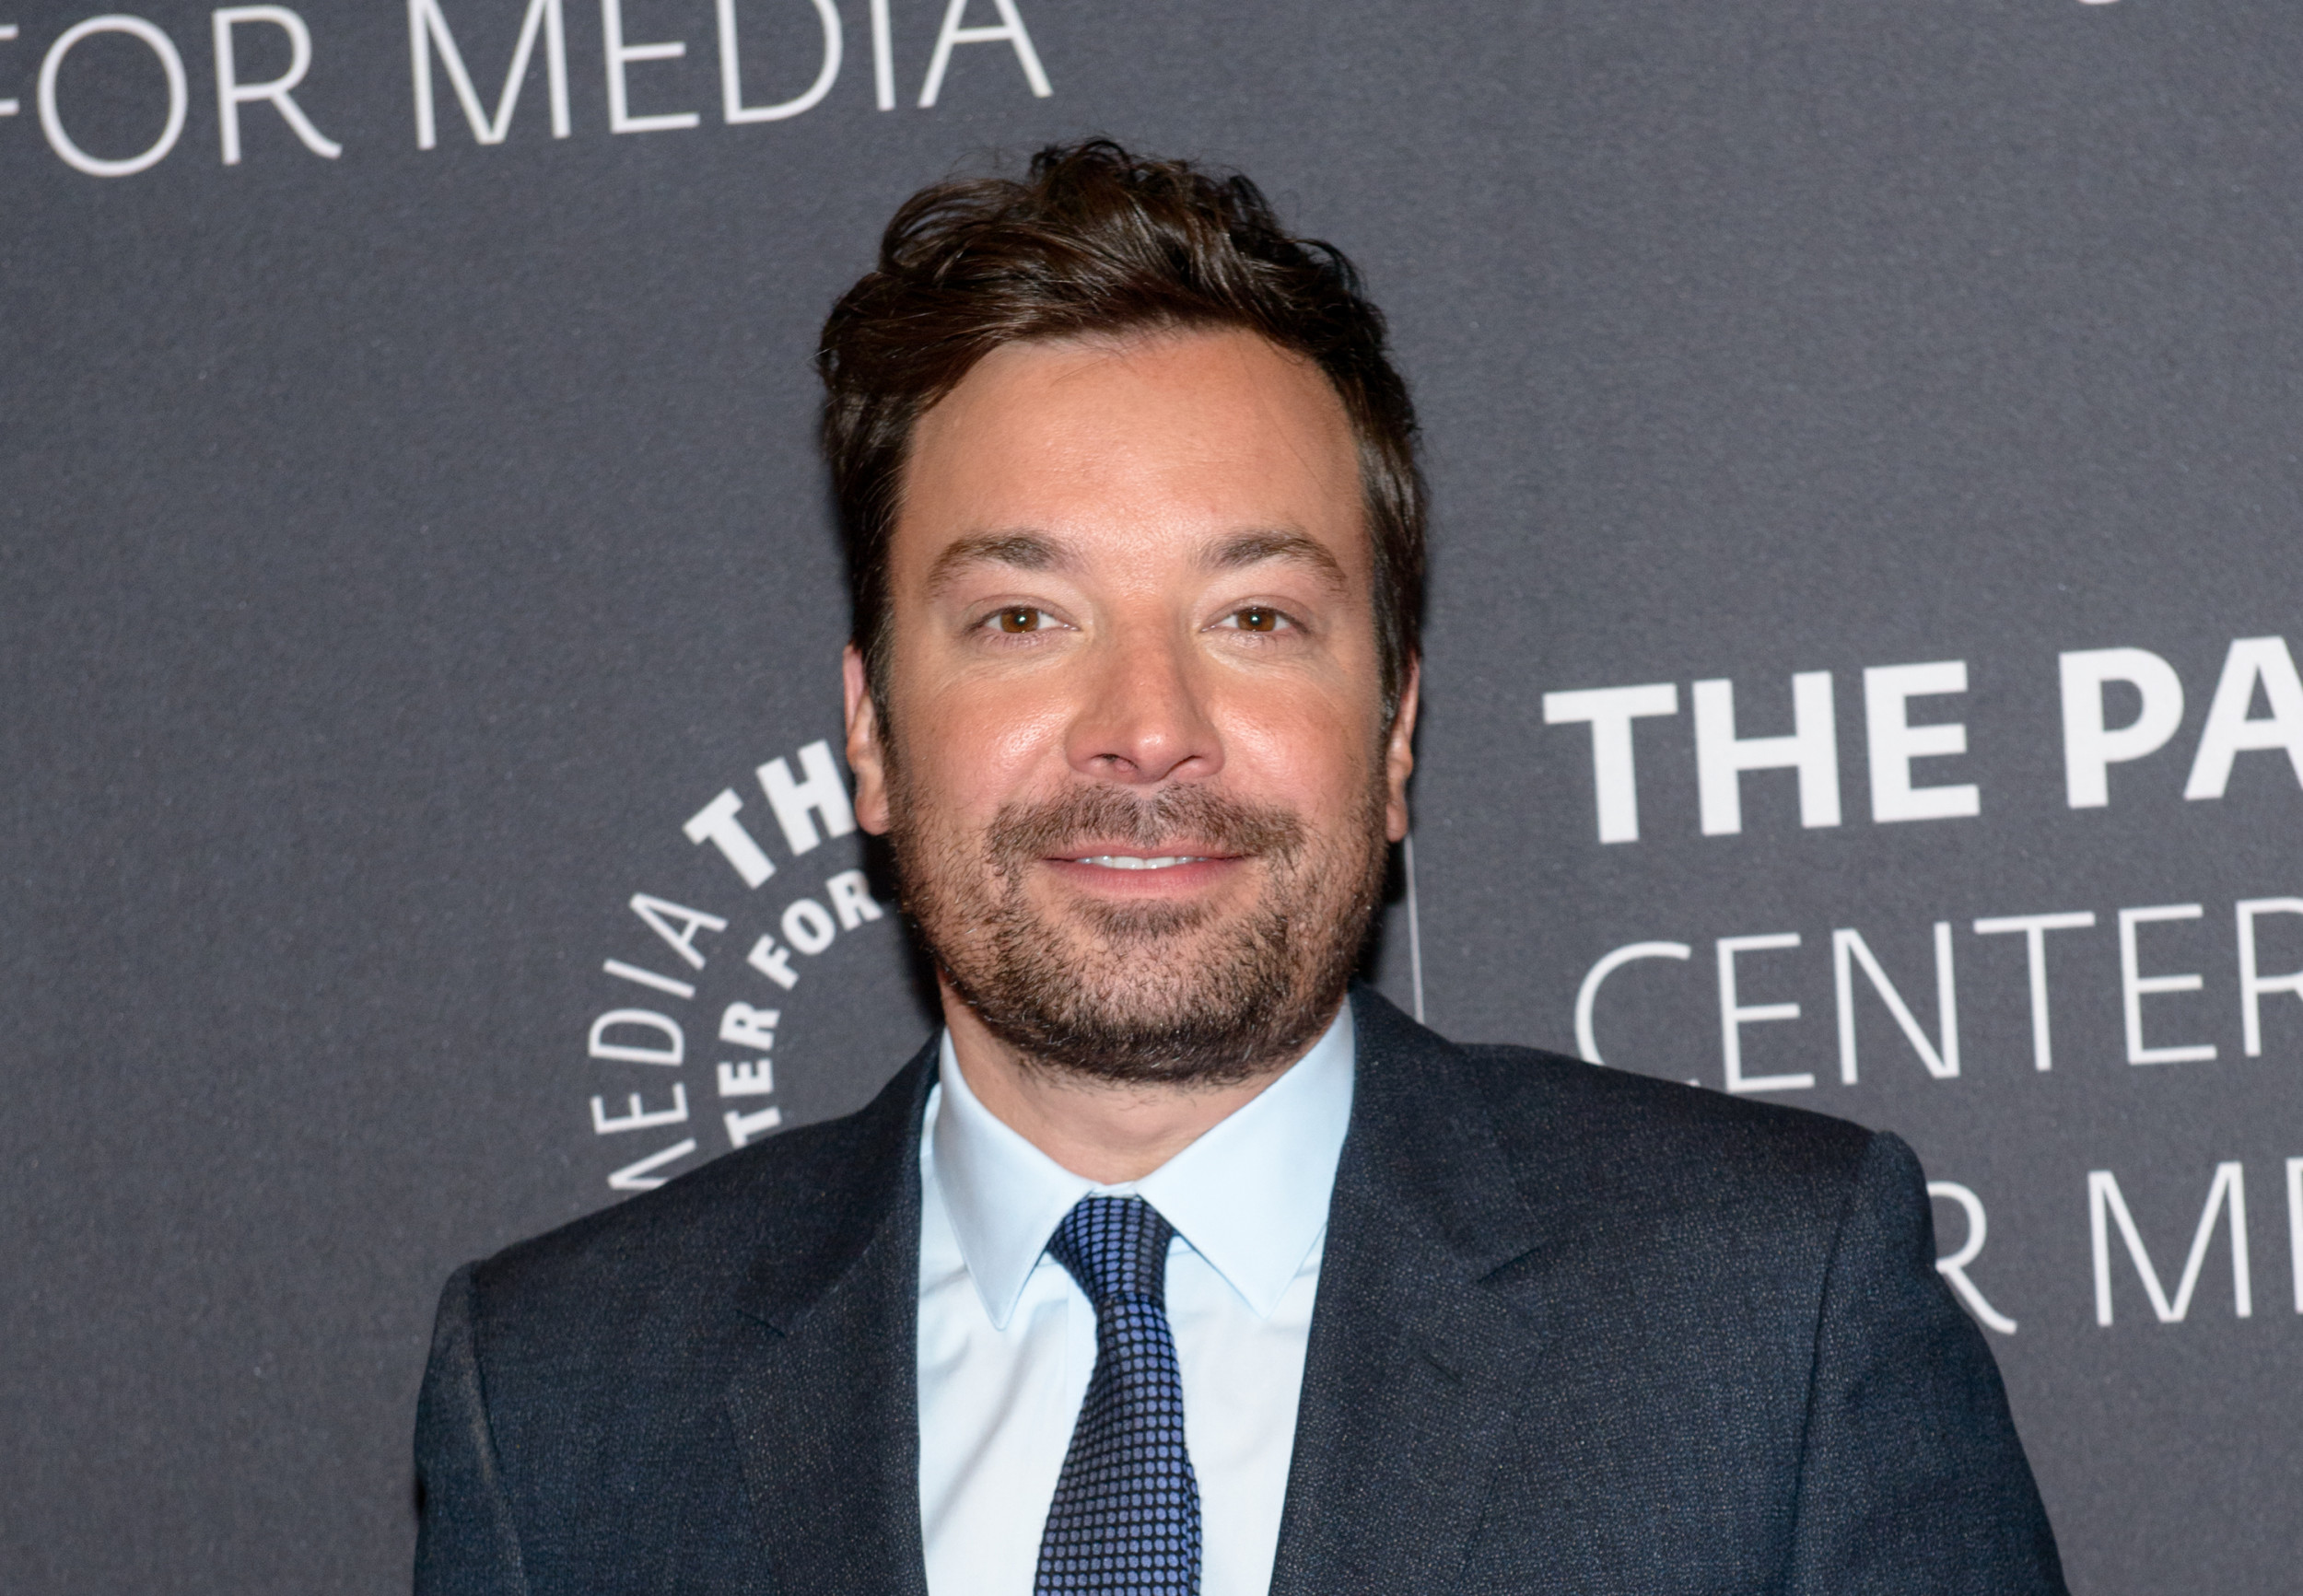 Jimmy Fallon Mocks Sidney Powell's Firing From Trump's Merely Crew For 'Being Too Crazy'